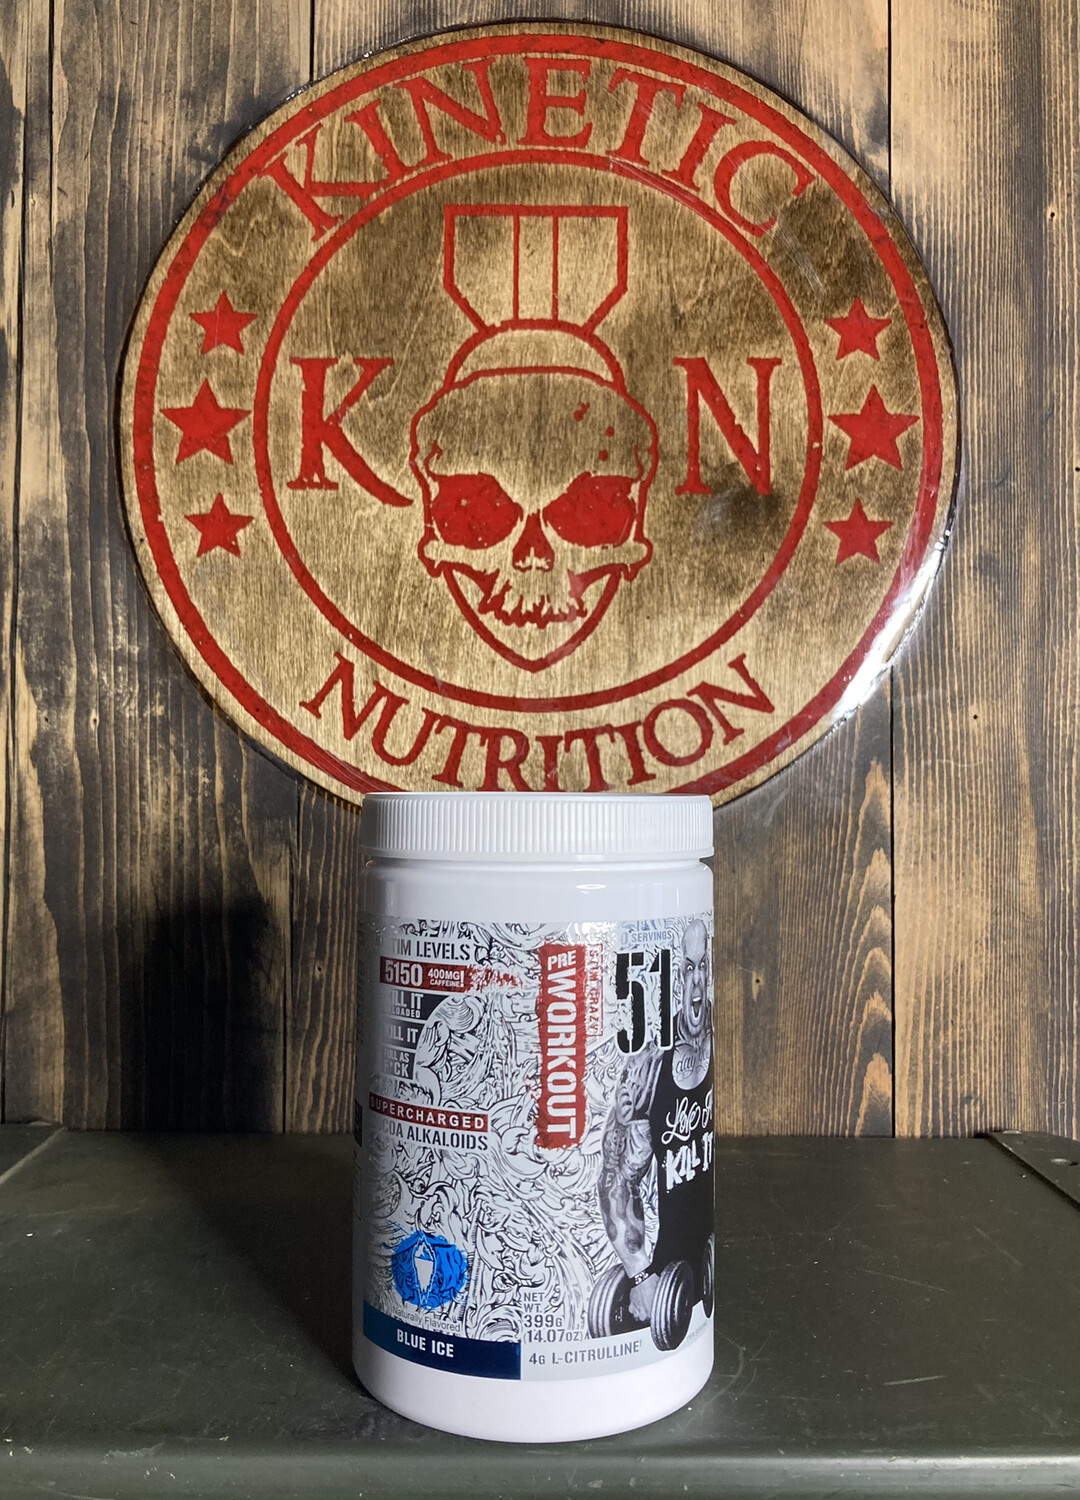 5% Nutrition, 5150, 30 Servings, Blue Ice